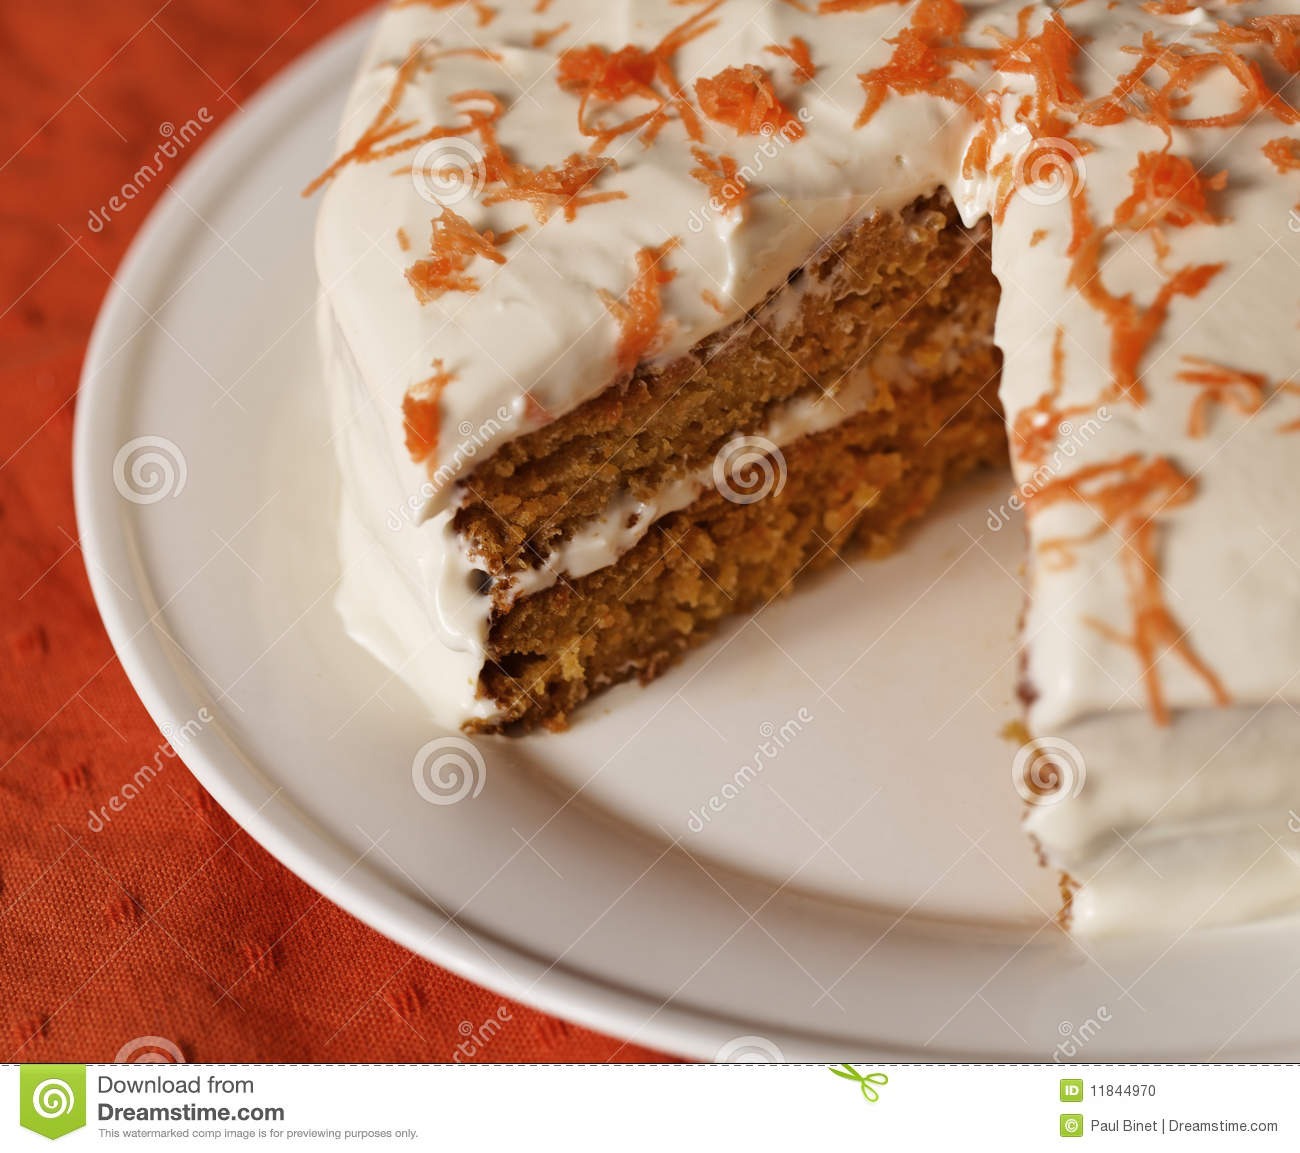 Calories In Carrot Cake With Icing